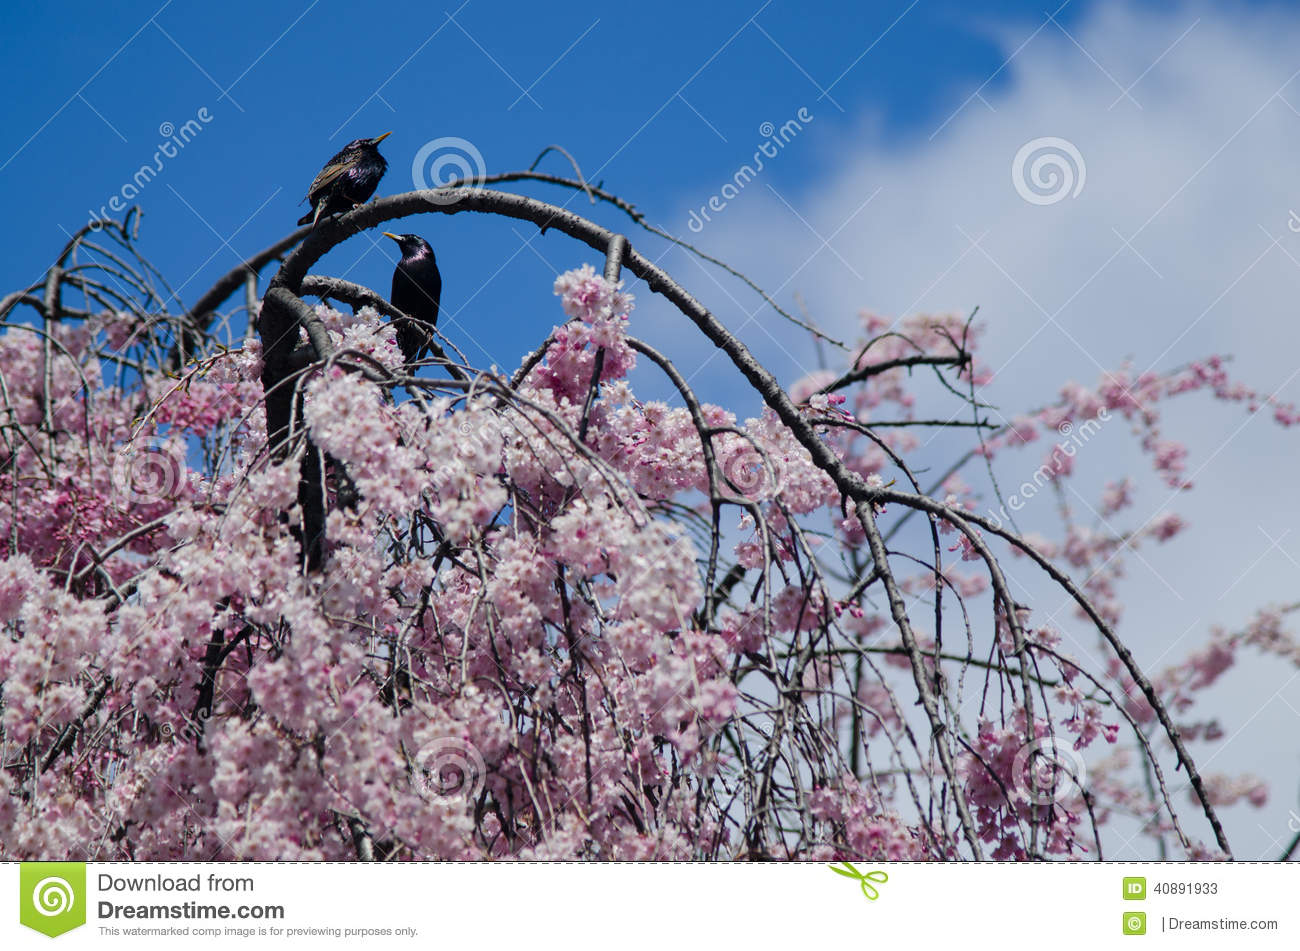 Birds On Blooming Cherry Tree Stock Image Image Of Blooms Cherry